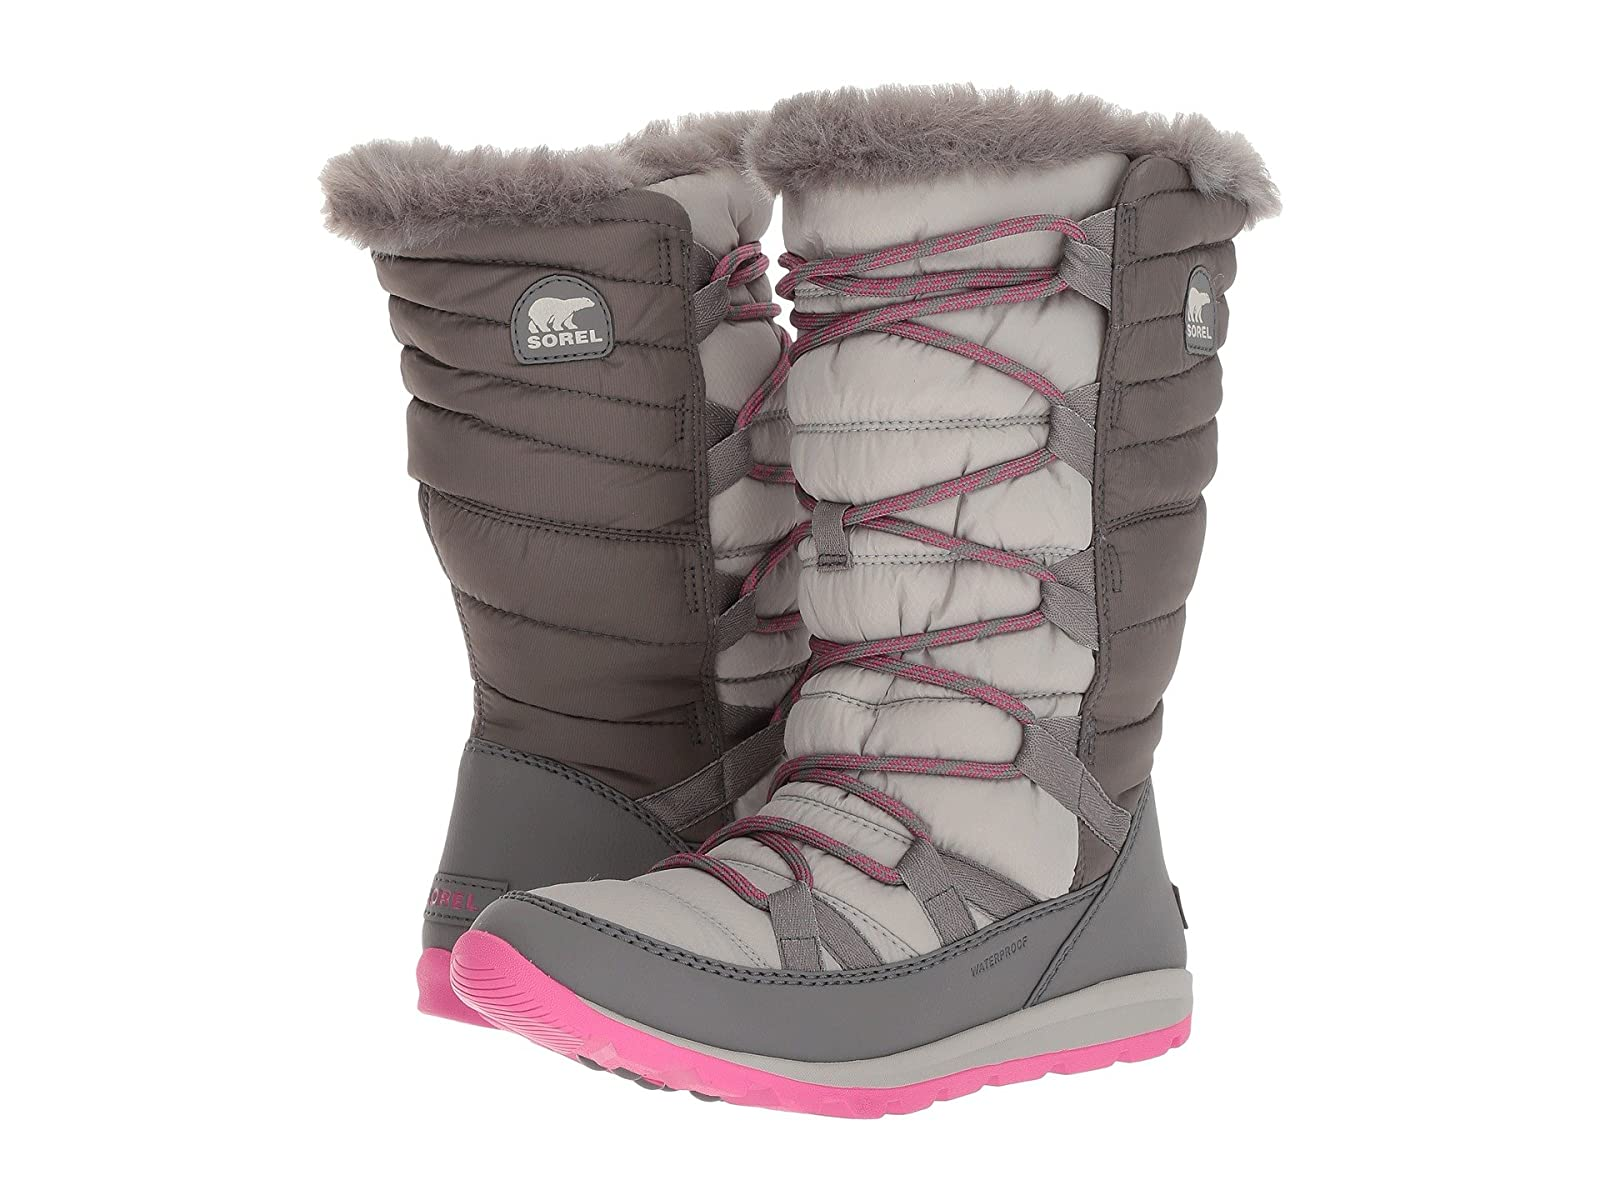 SOREL Kids Whitney Lace (Toddler/Little Kid/Big Kid)Cheap and distinctive eye-catching shoes